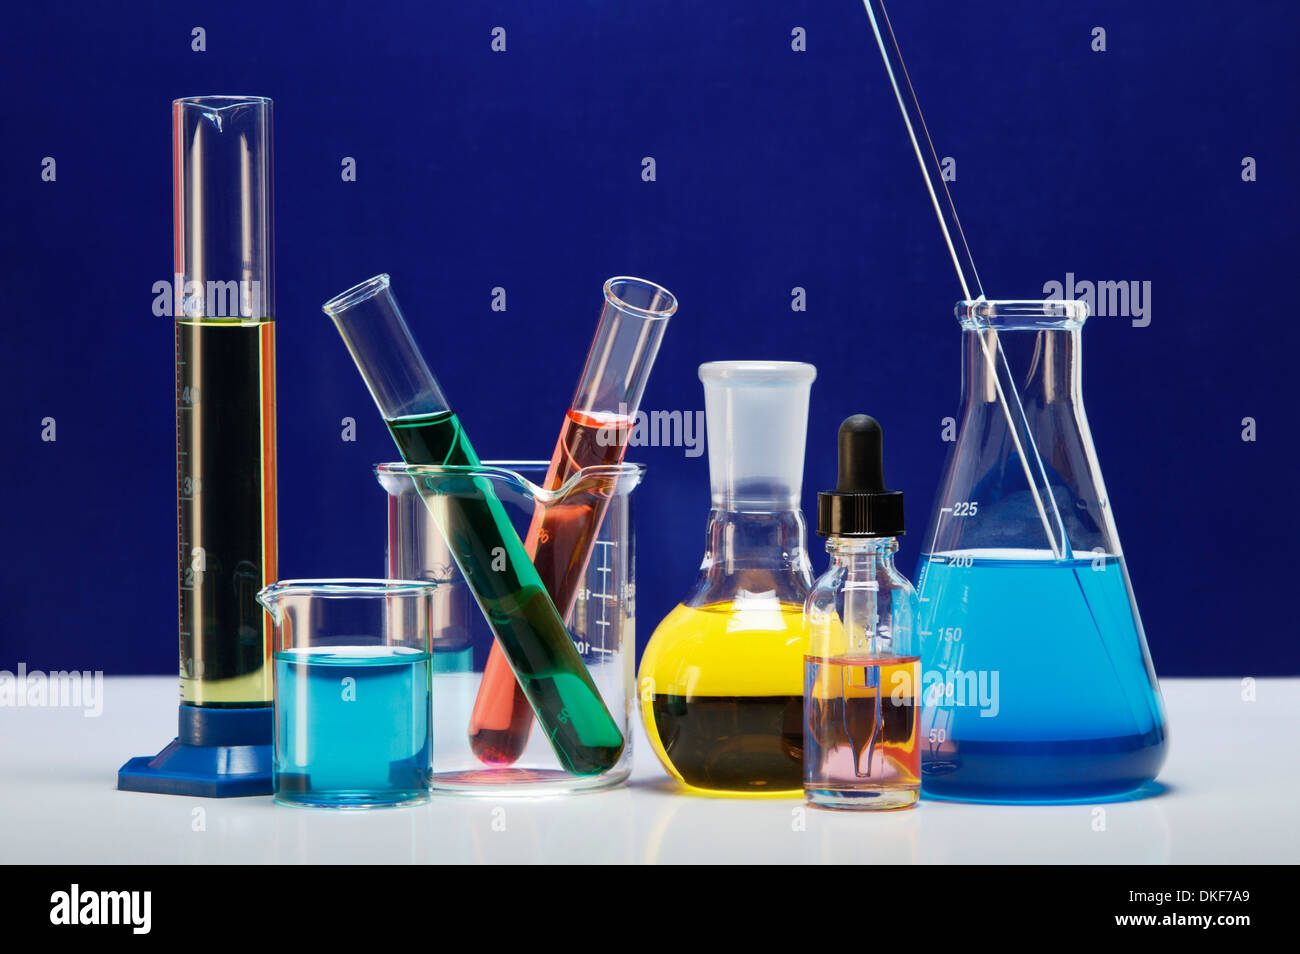 Chemical Lab Glassware Graduated Cylinder Small Beaker